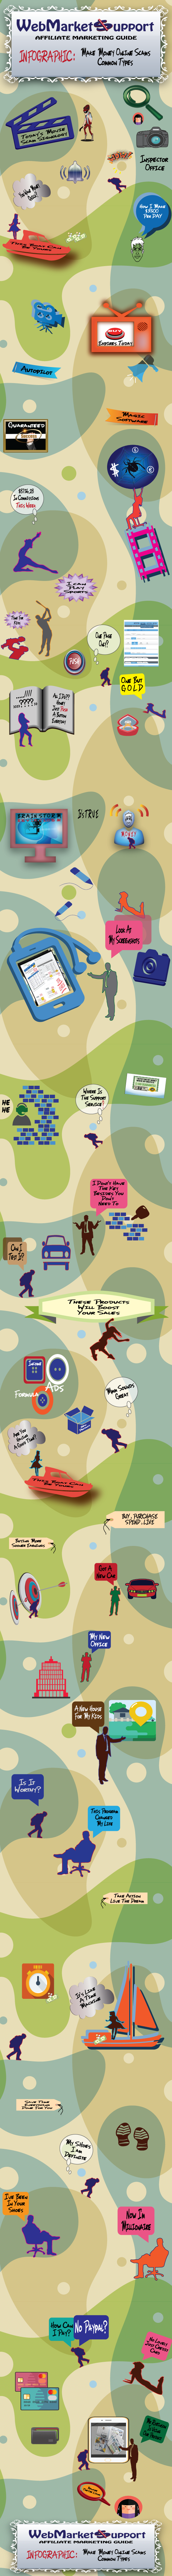 make-money-online-scams-common-types-infographic